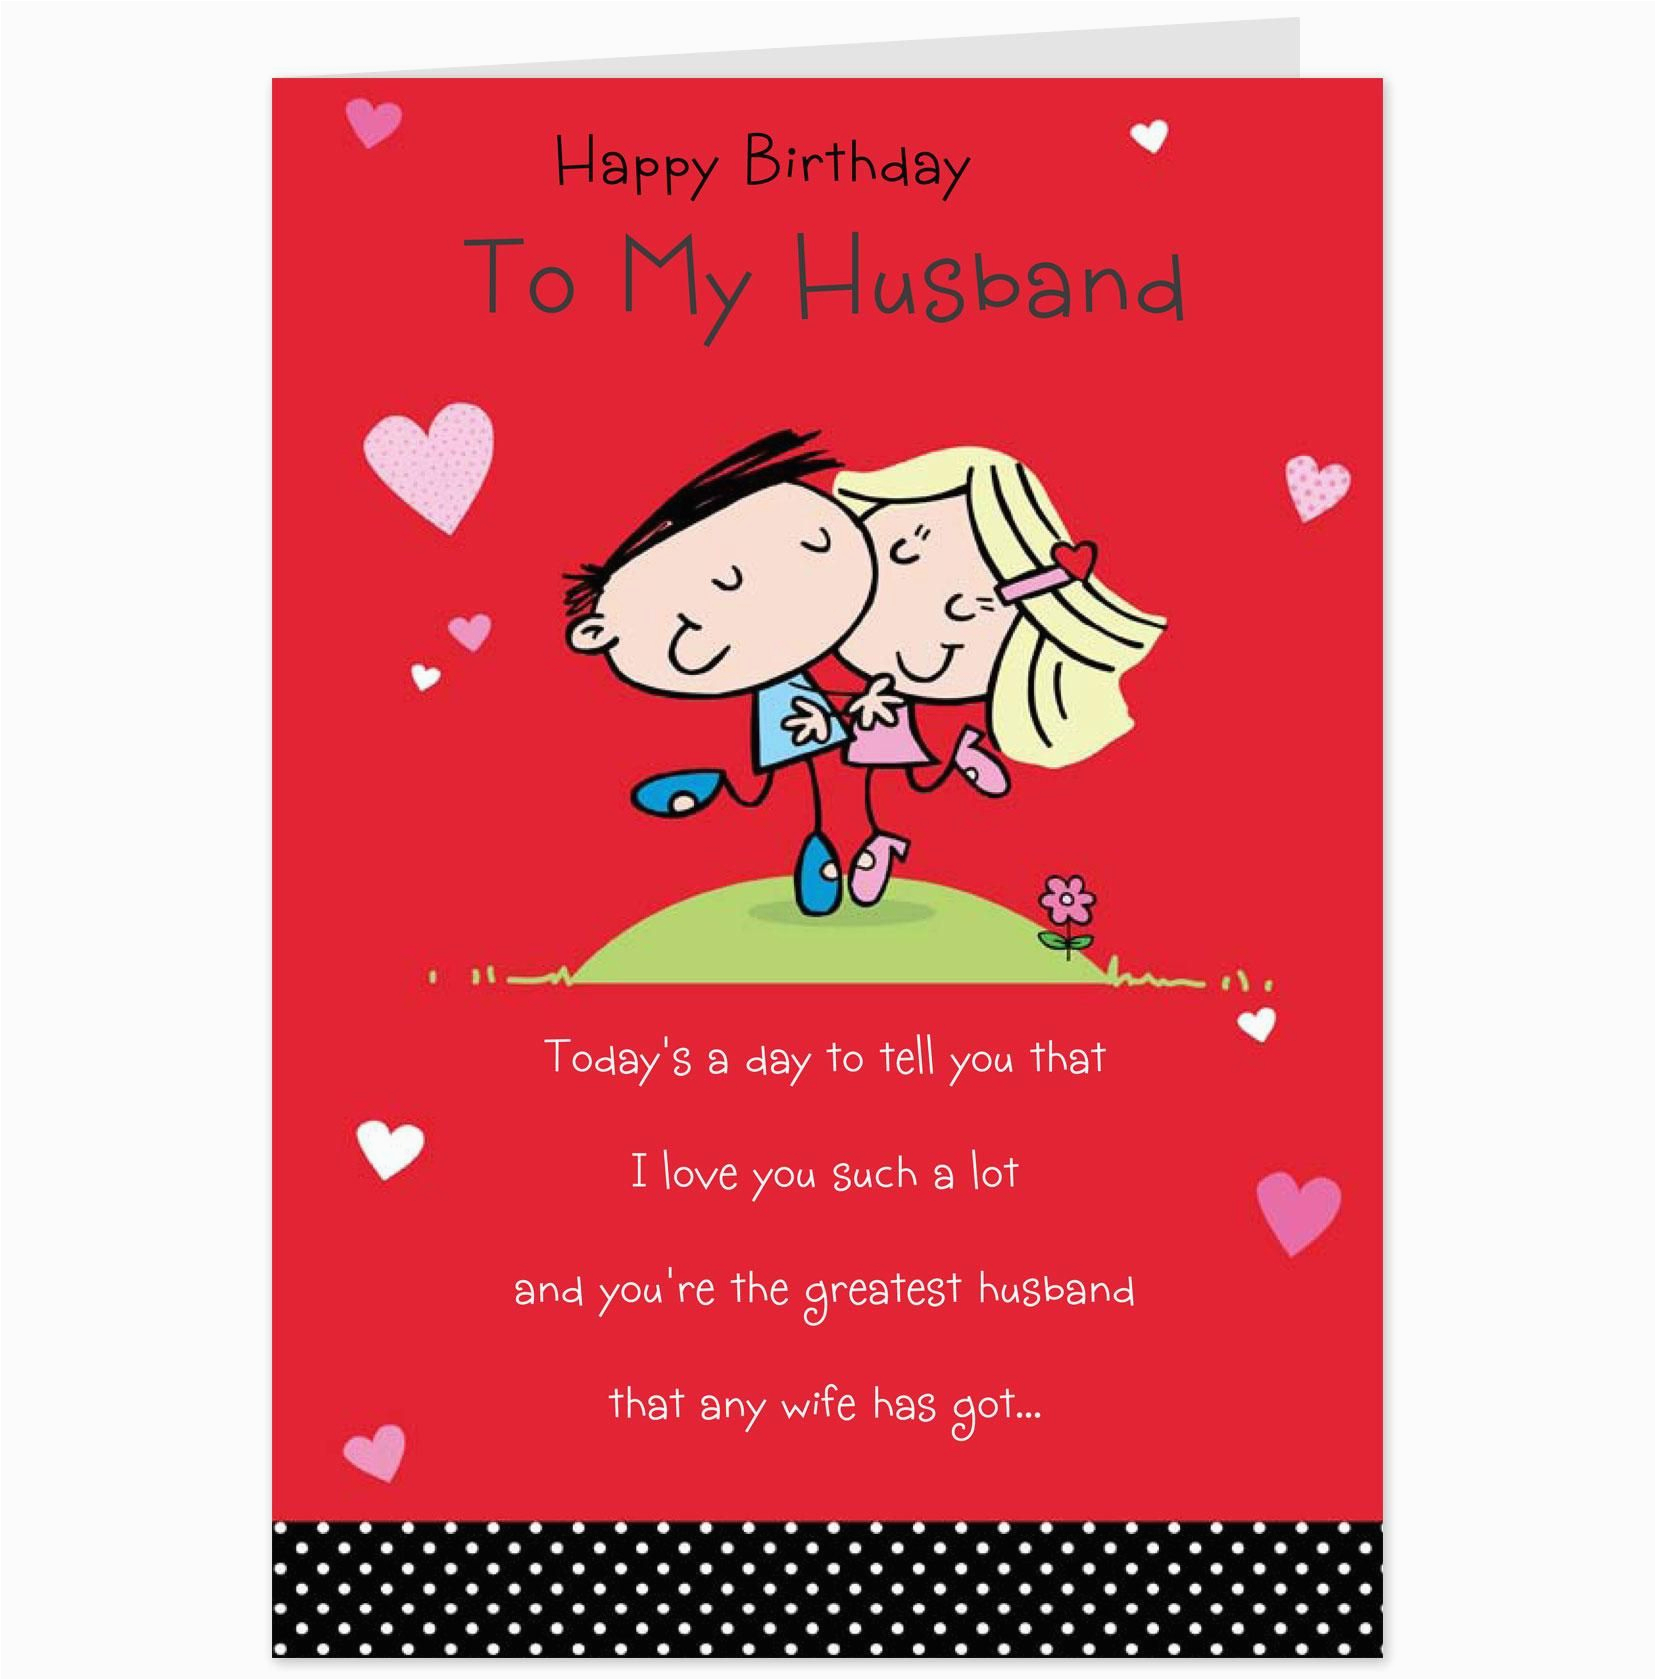 260082947207061635 Birthday Invitations Card Romantic Wishes To From Free Printable Cards For My Husband